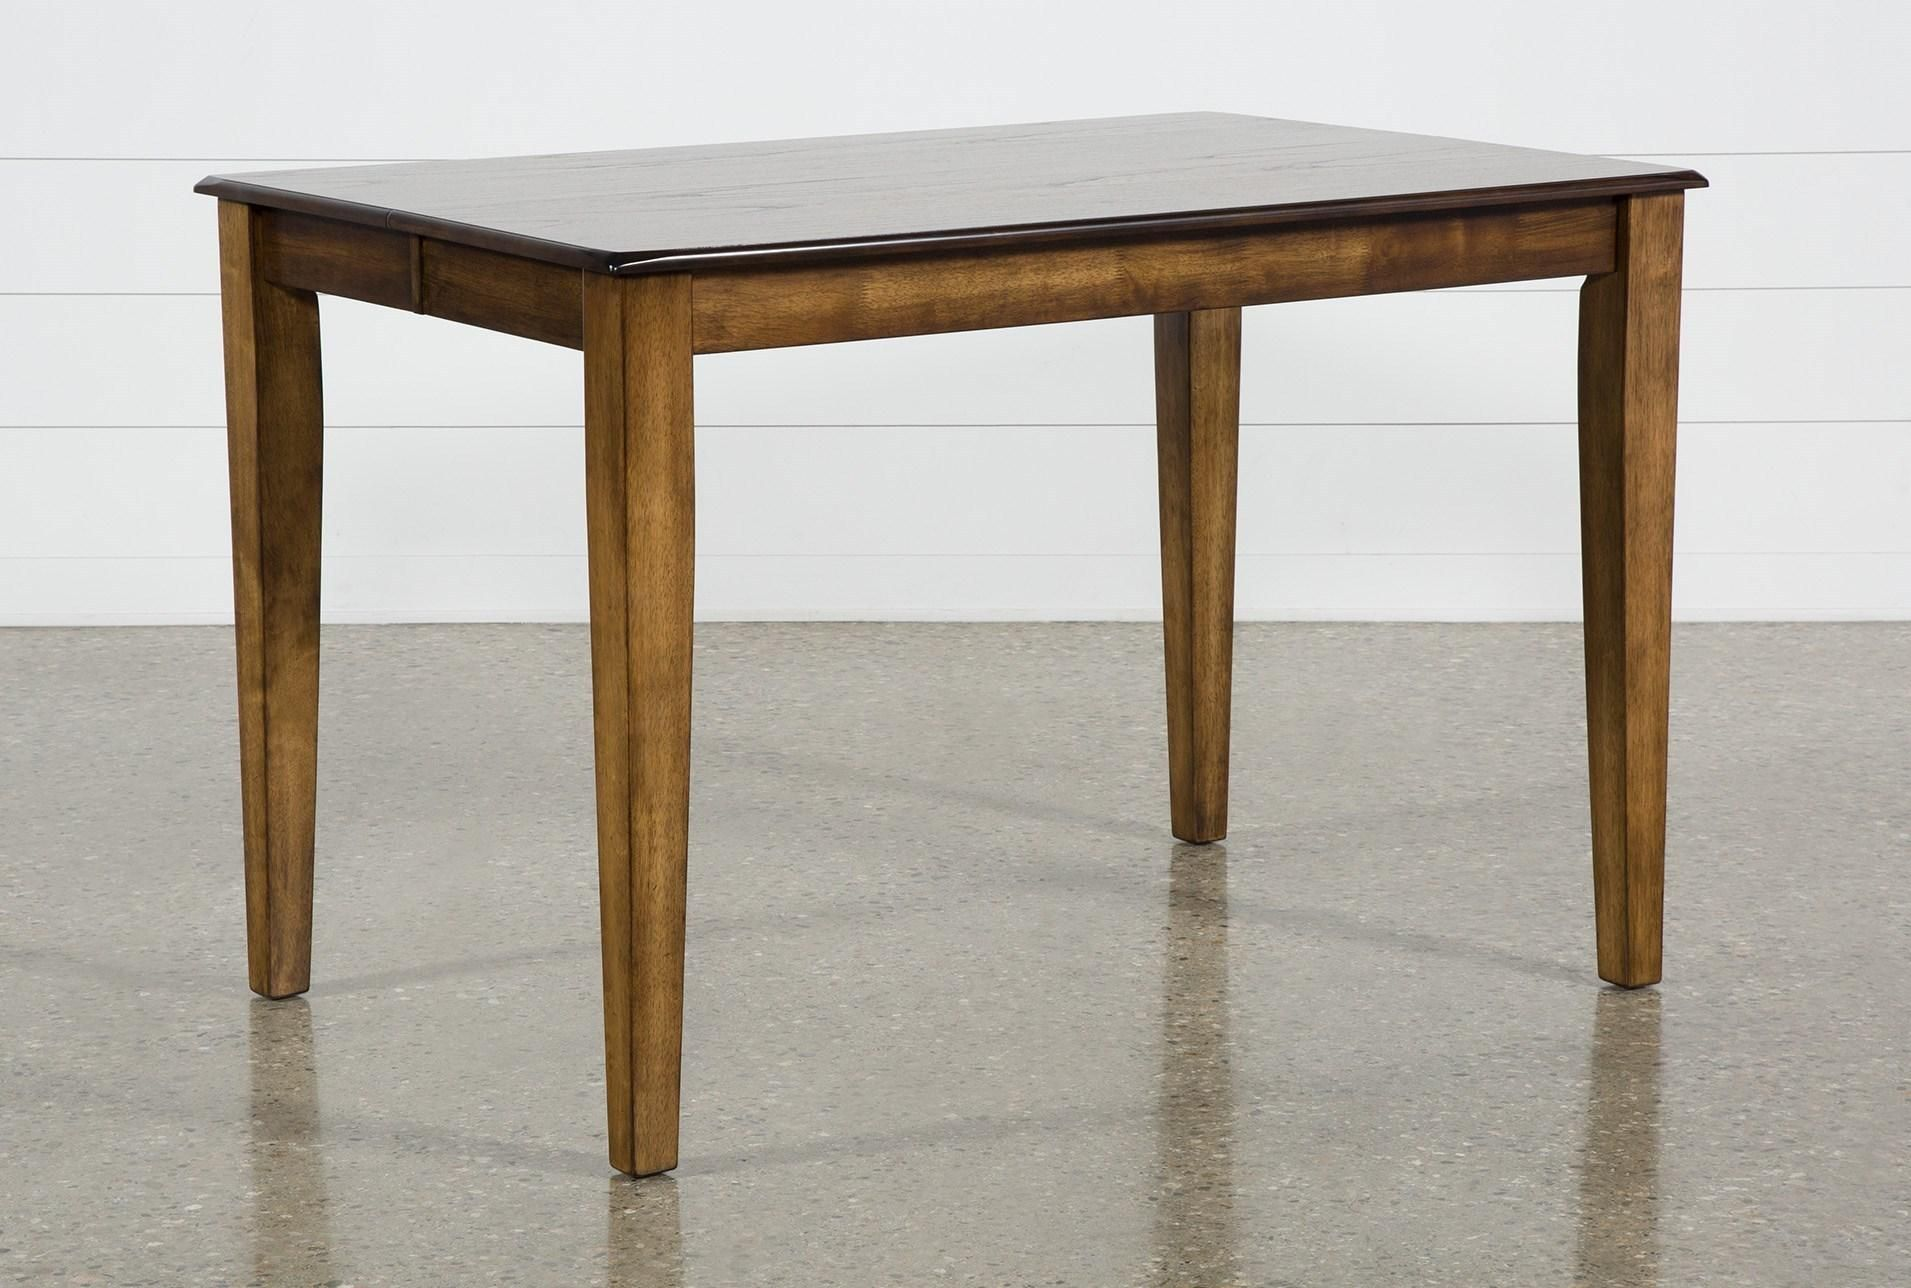 Extension In 2019Dining Room Counter Table Table Rory lK1TFcJ